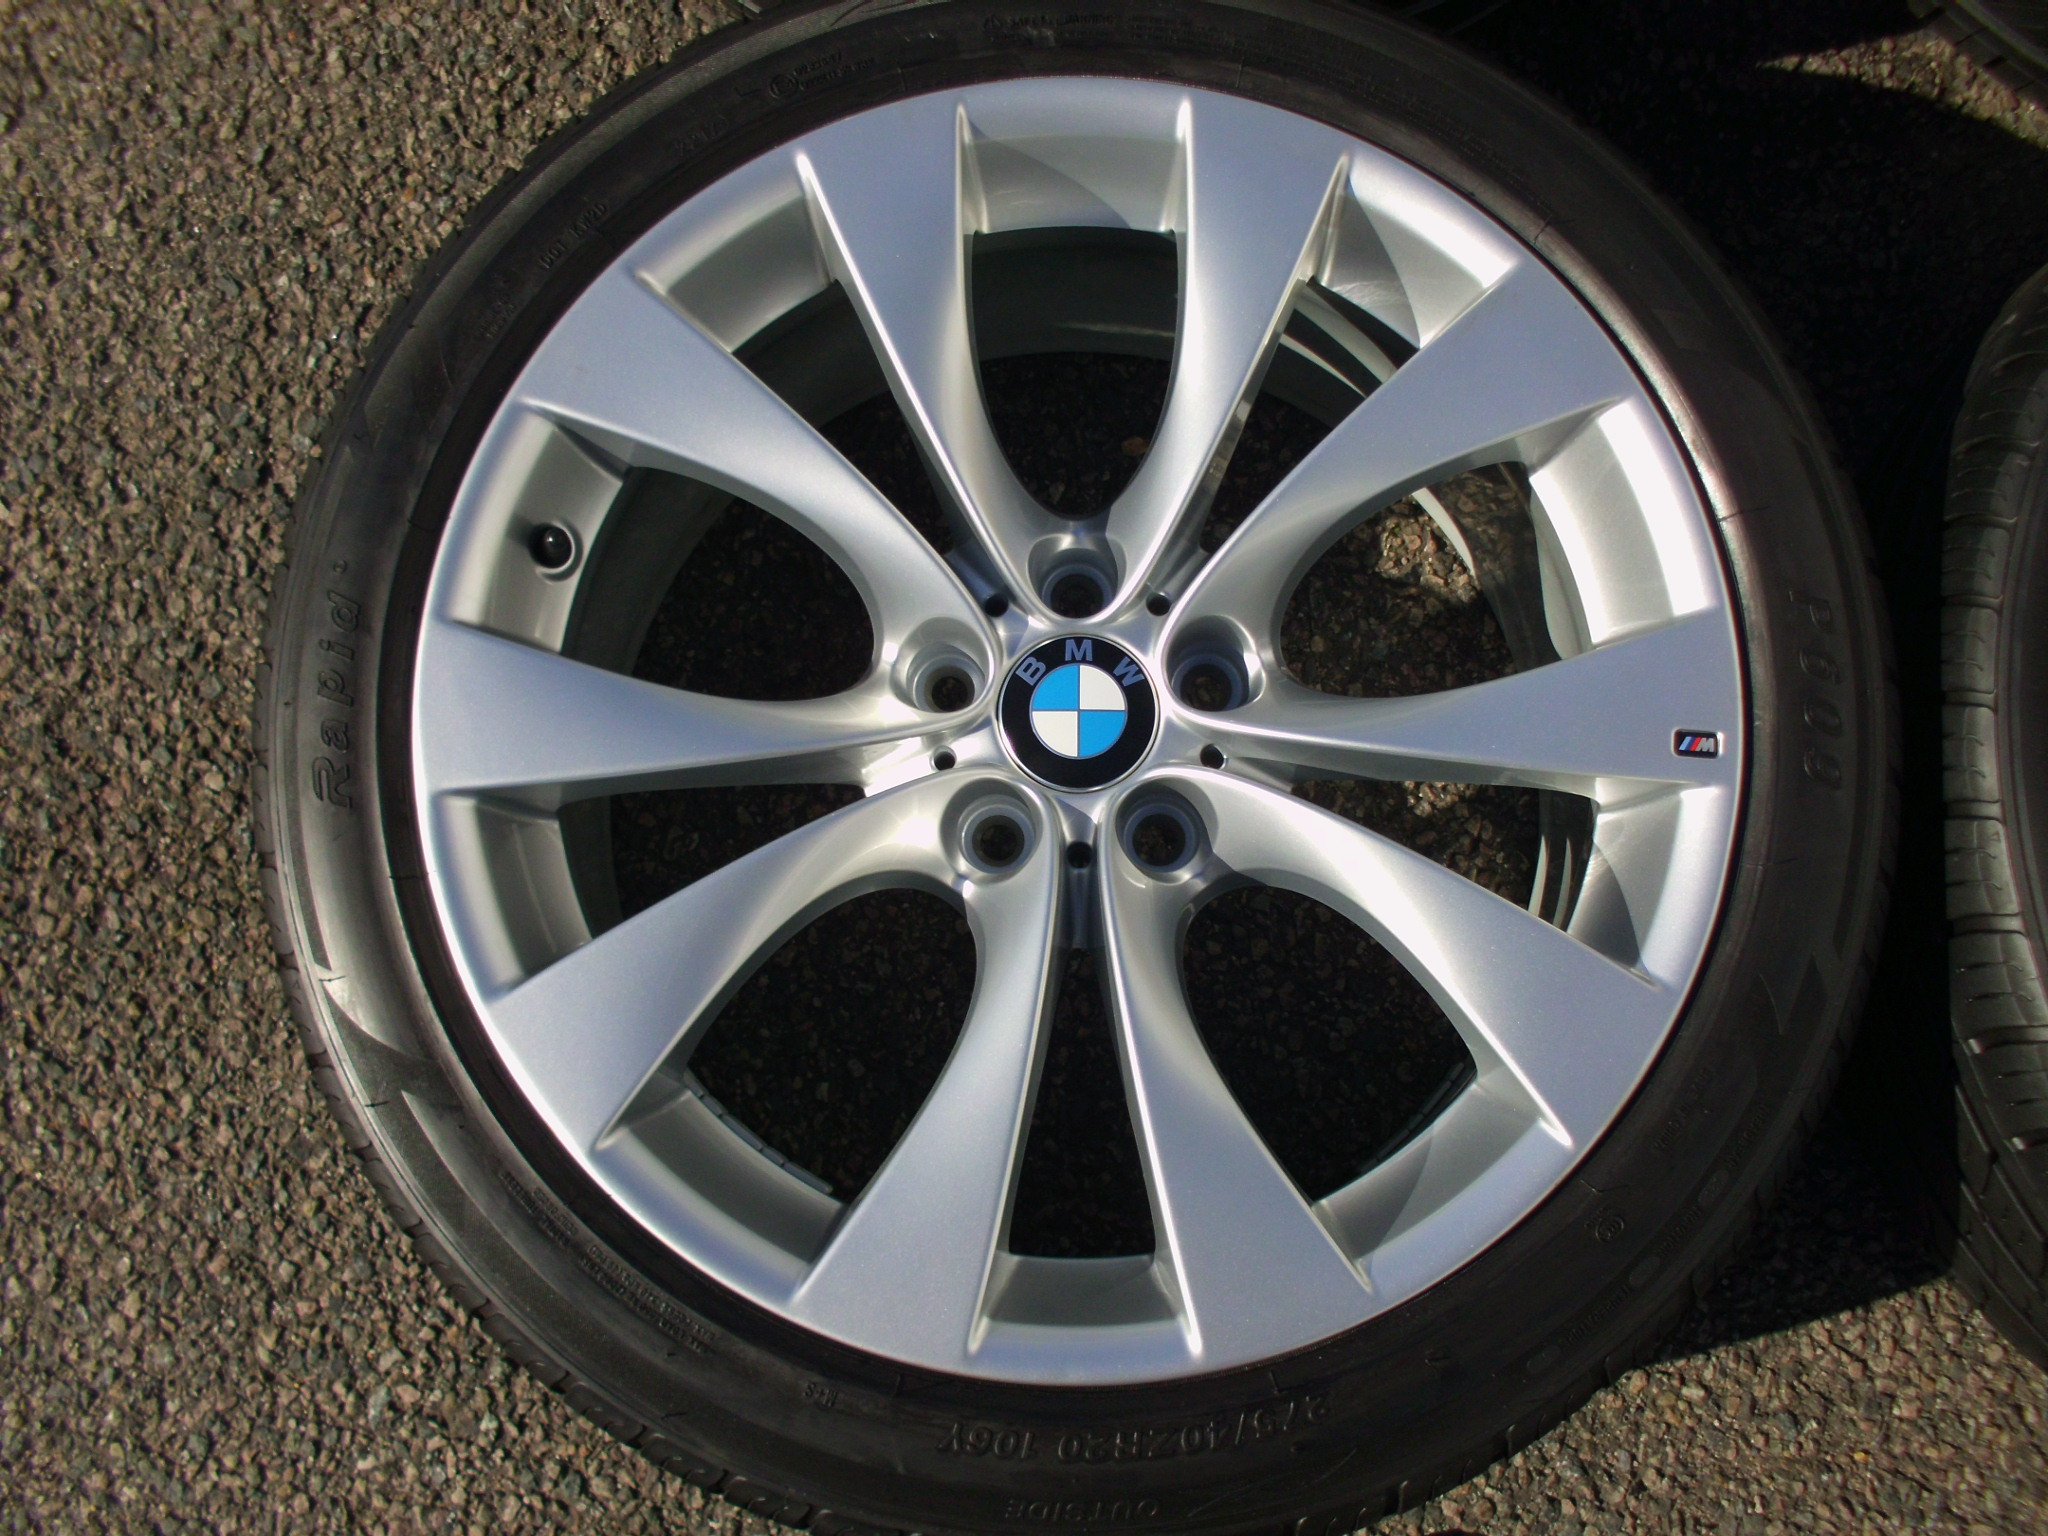 "USED 20"" GENUINE STYLE 227M E70 X5/X6 U SPOKE SPORT ALLOYS, FULLY REFURBED, 11"" REAR, INC VERY GOOD NON RUNFLAT'S"